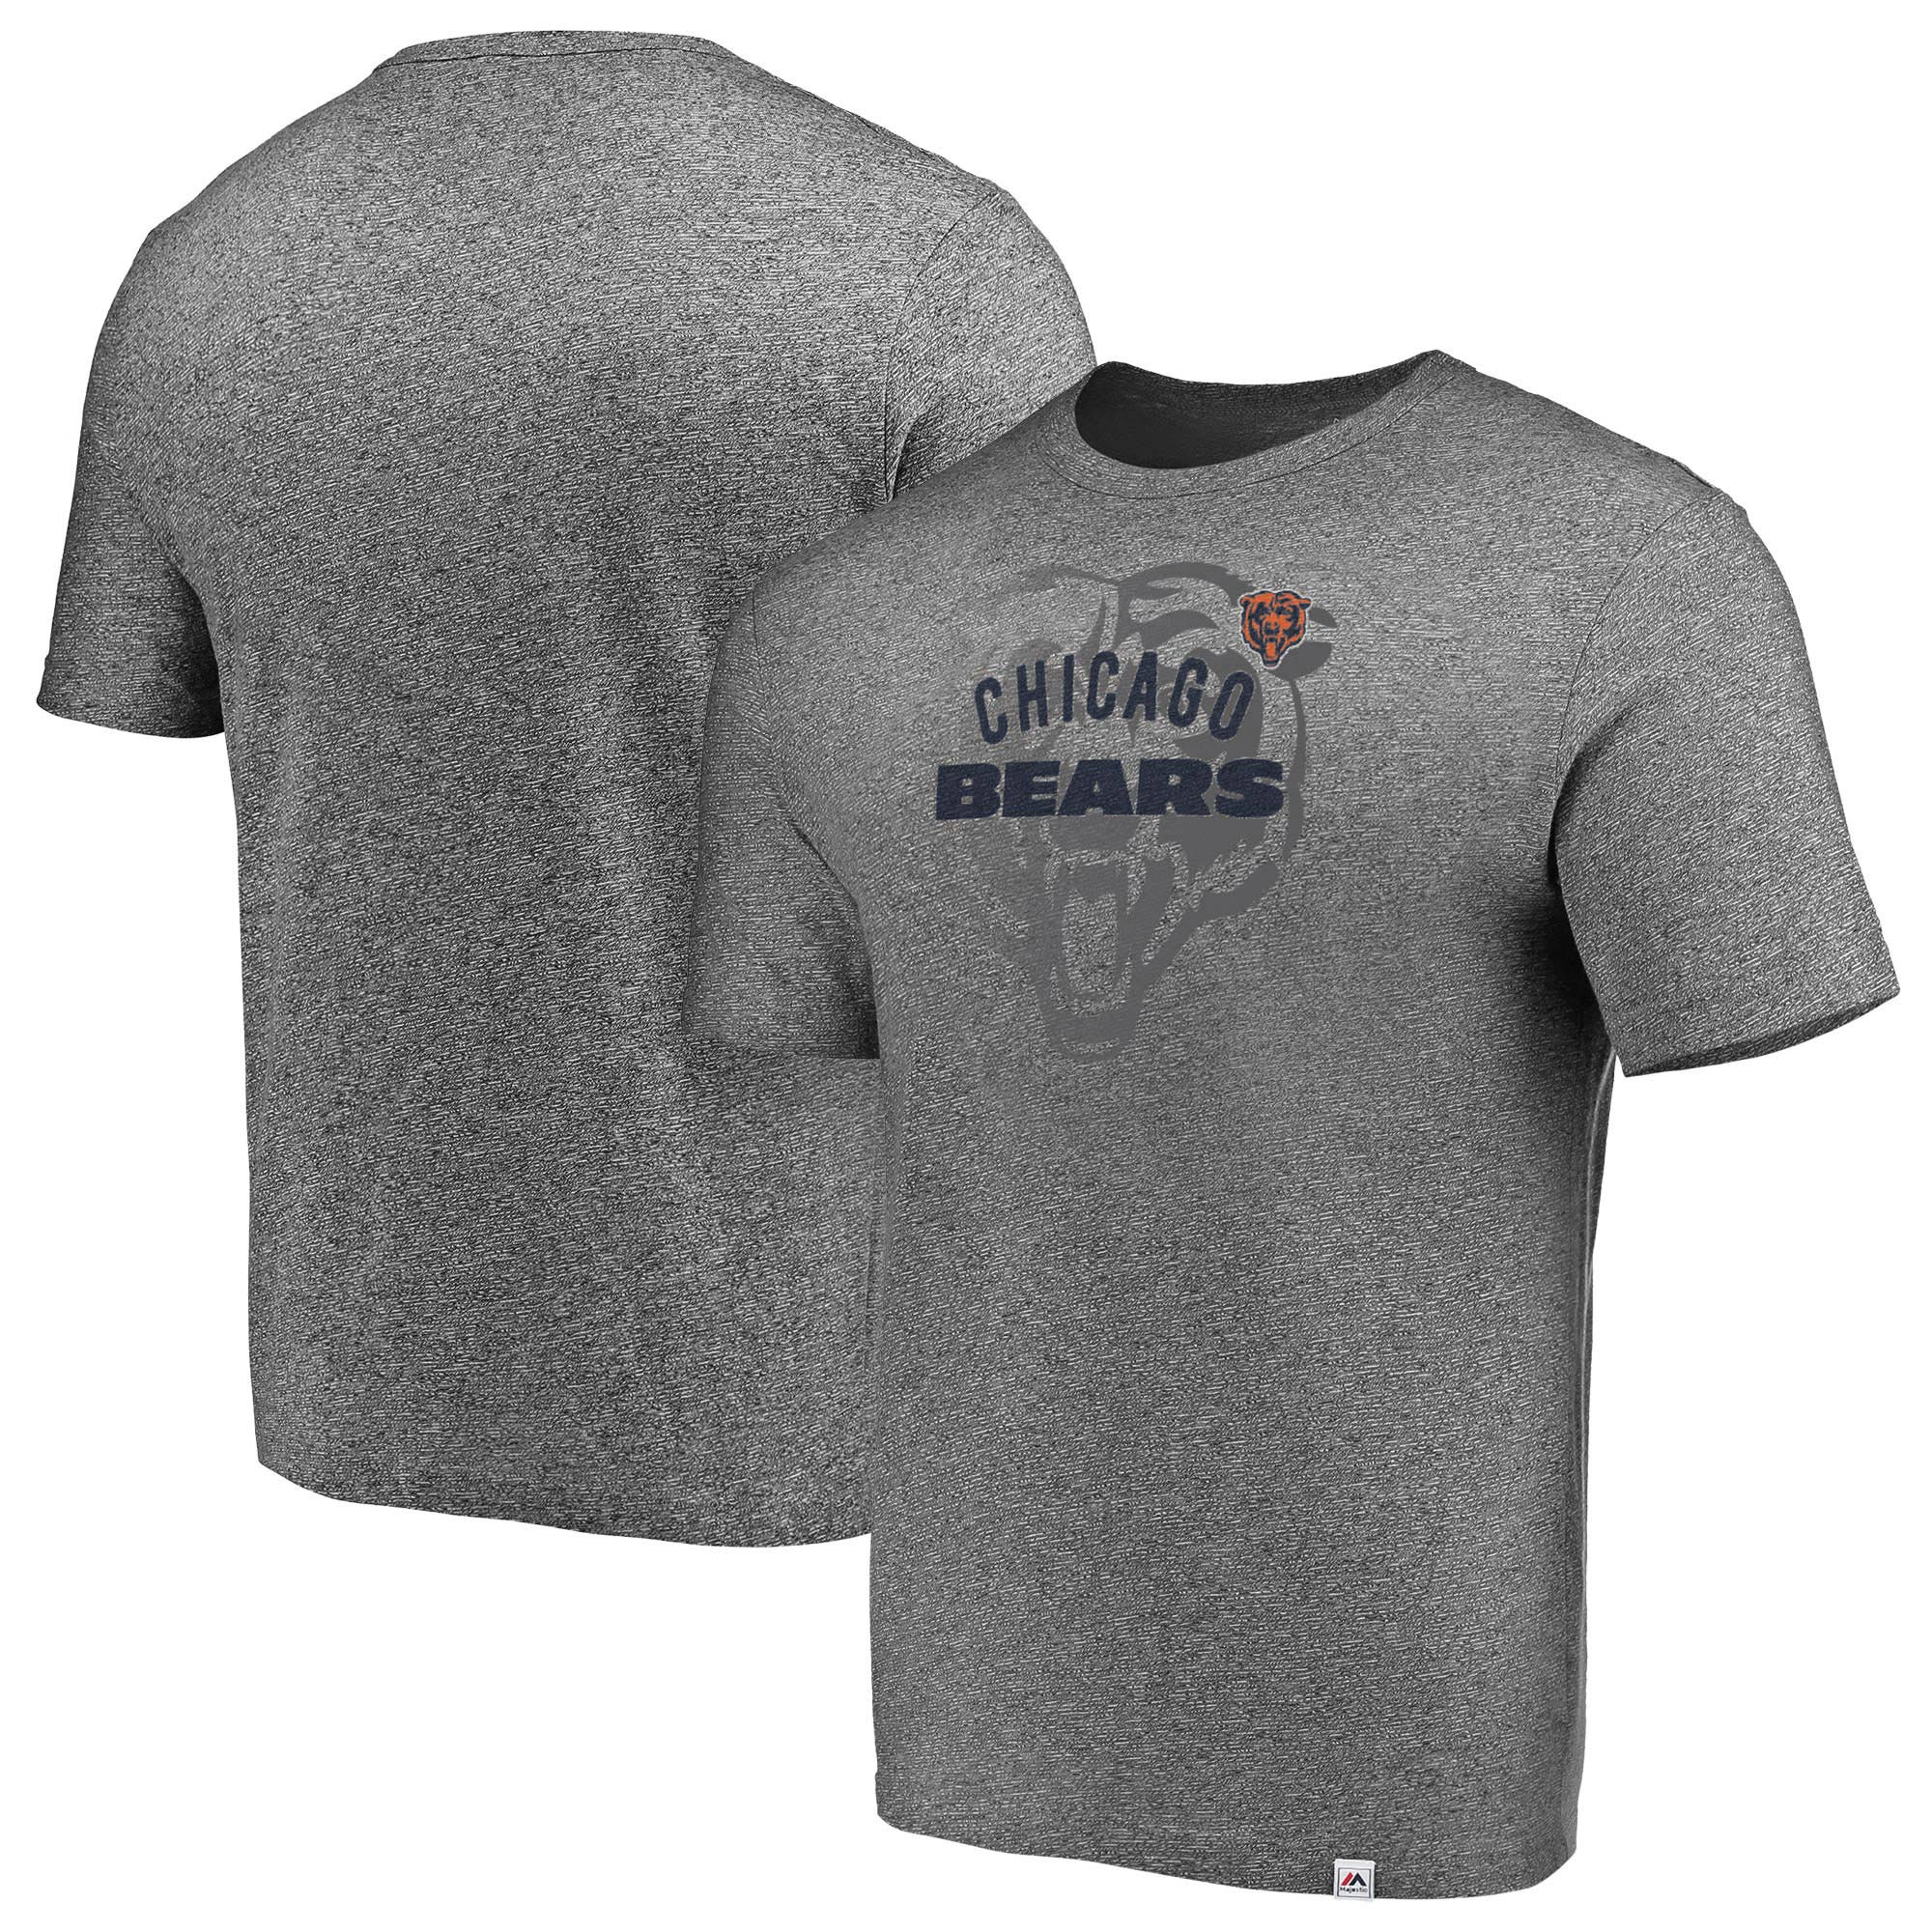 Chicago Bears Majestic Static Fade Marled T-Shirt - Heathered Gray